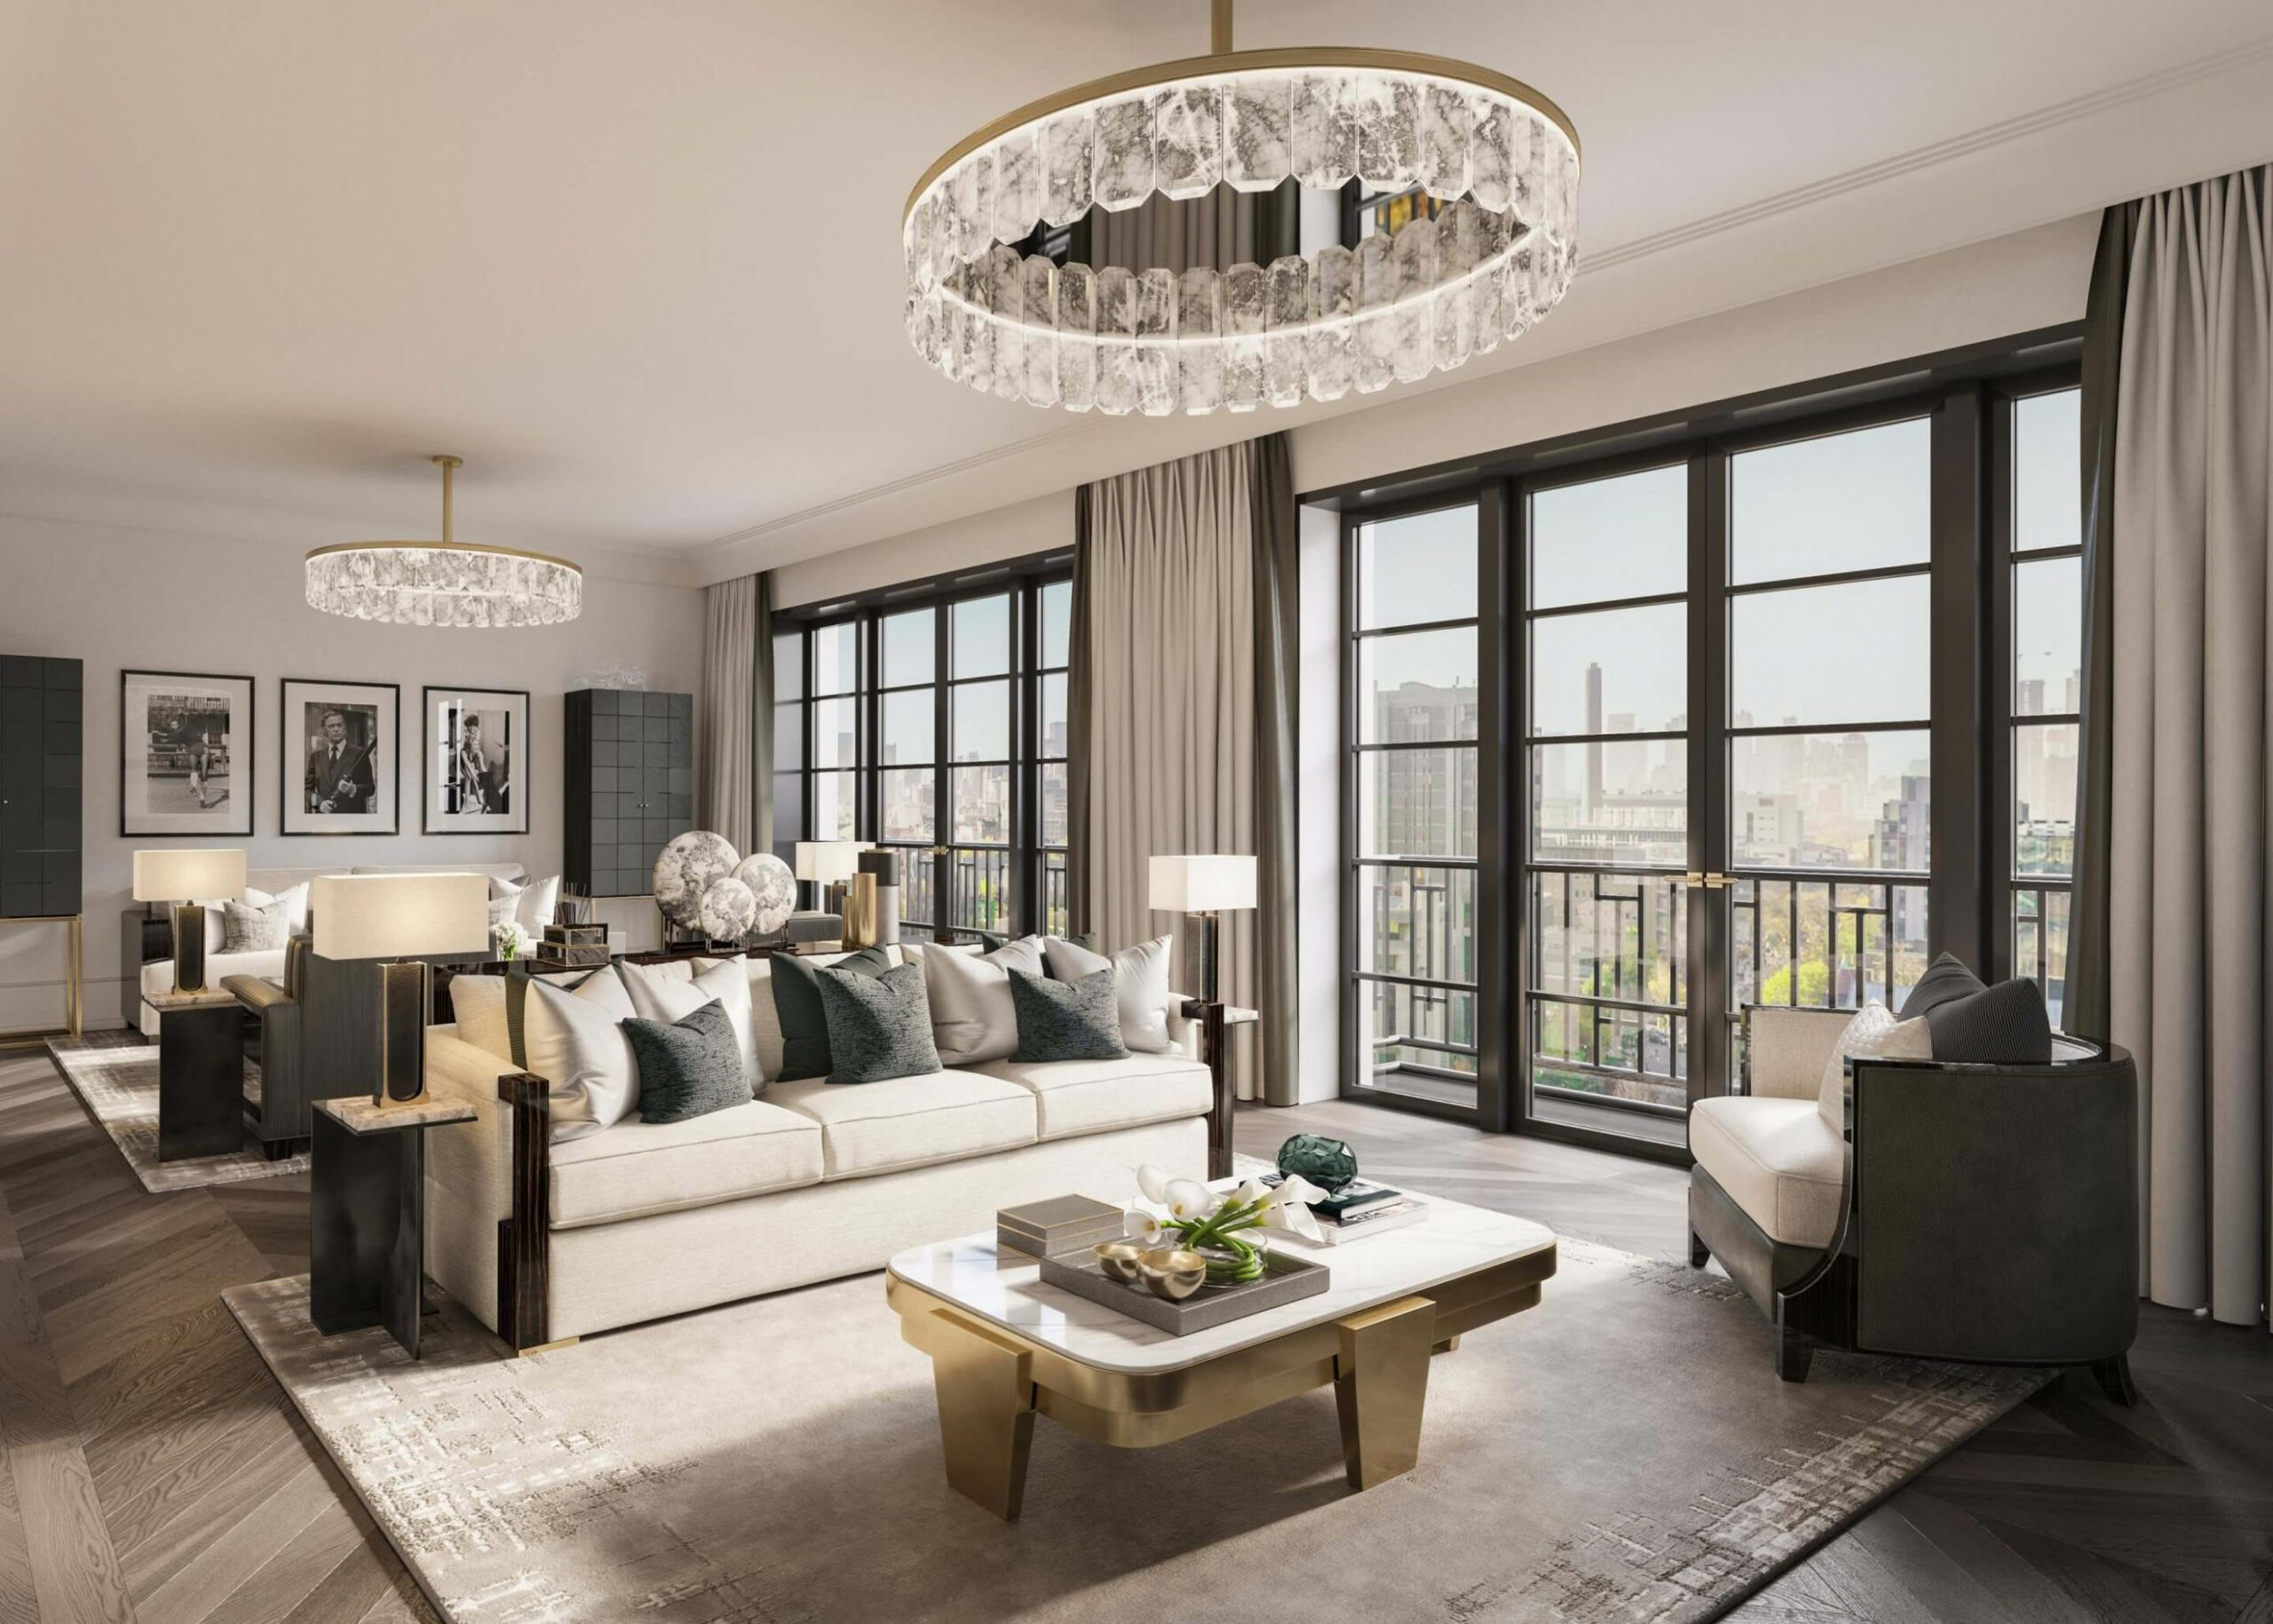 Upper East Side Apartment | Luxury Interior Design in New York ...